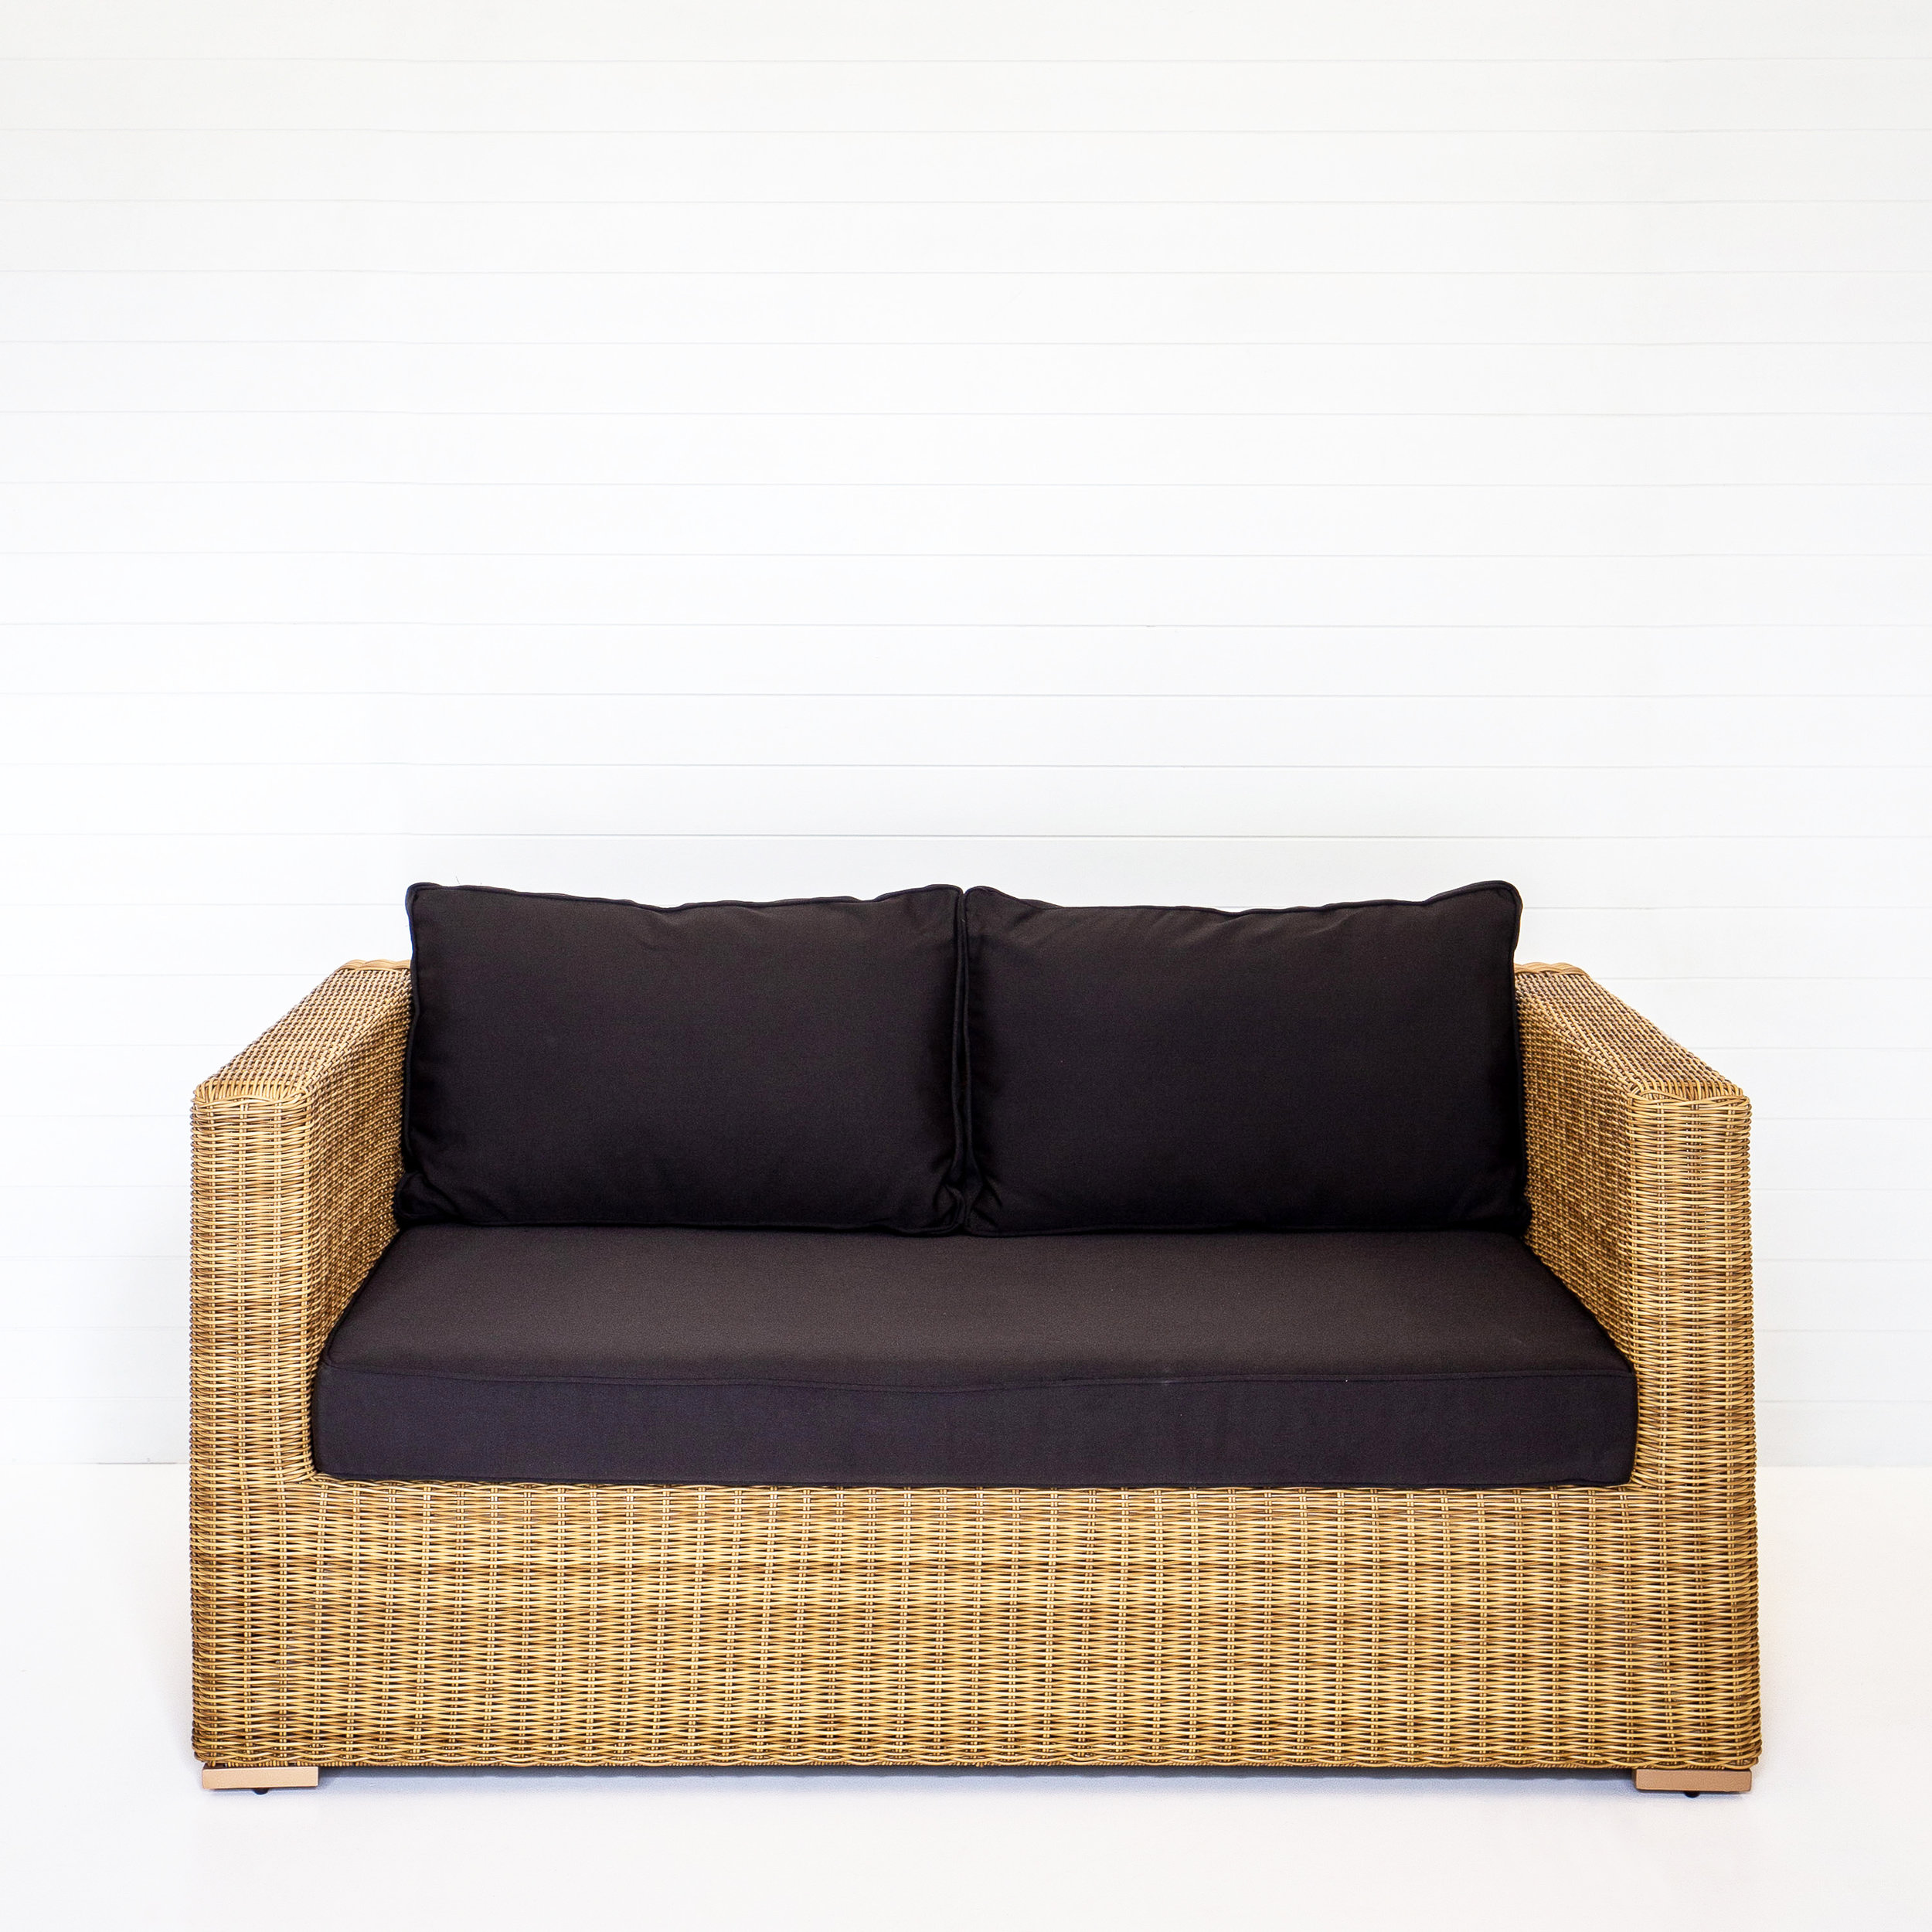 DUNE TWO SEATER SOFA (WITH ARMS) WITH BLACK CUSHIONS